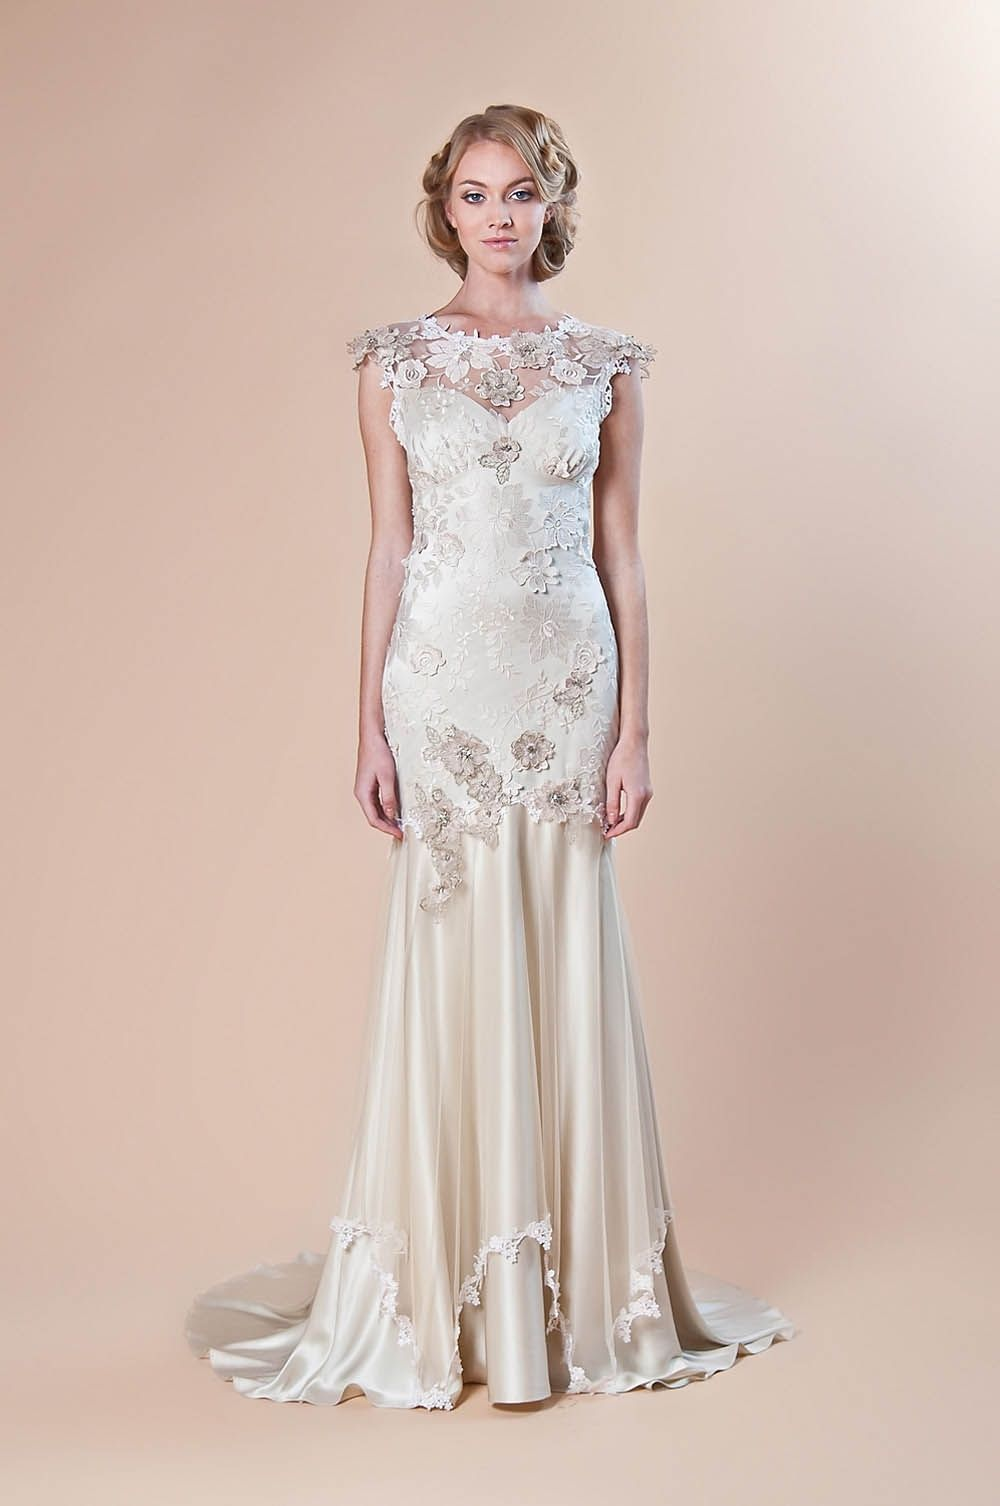 vintage-wedding-dresses-from-the-1920s-18-1920s-wedding-dresses